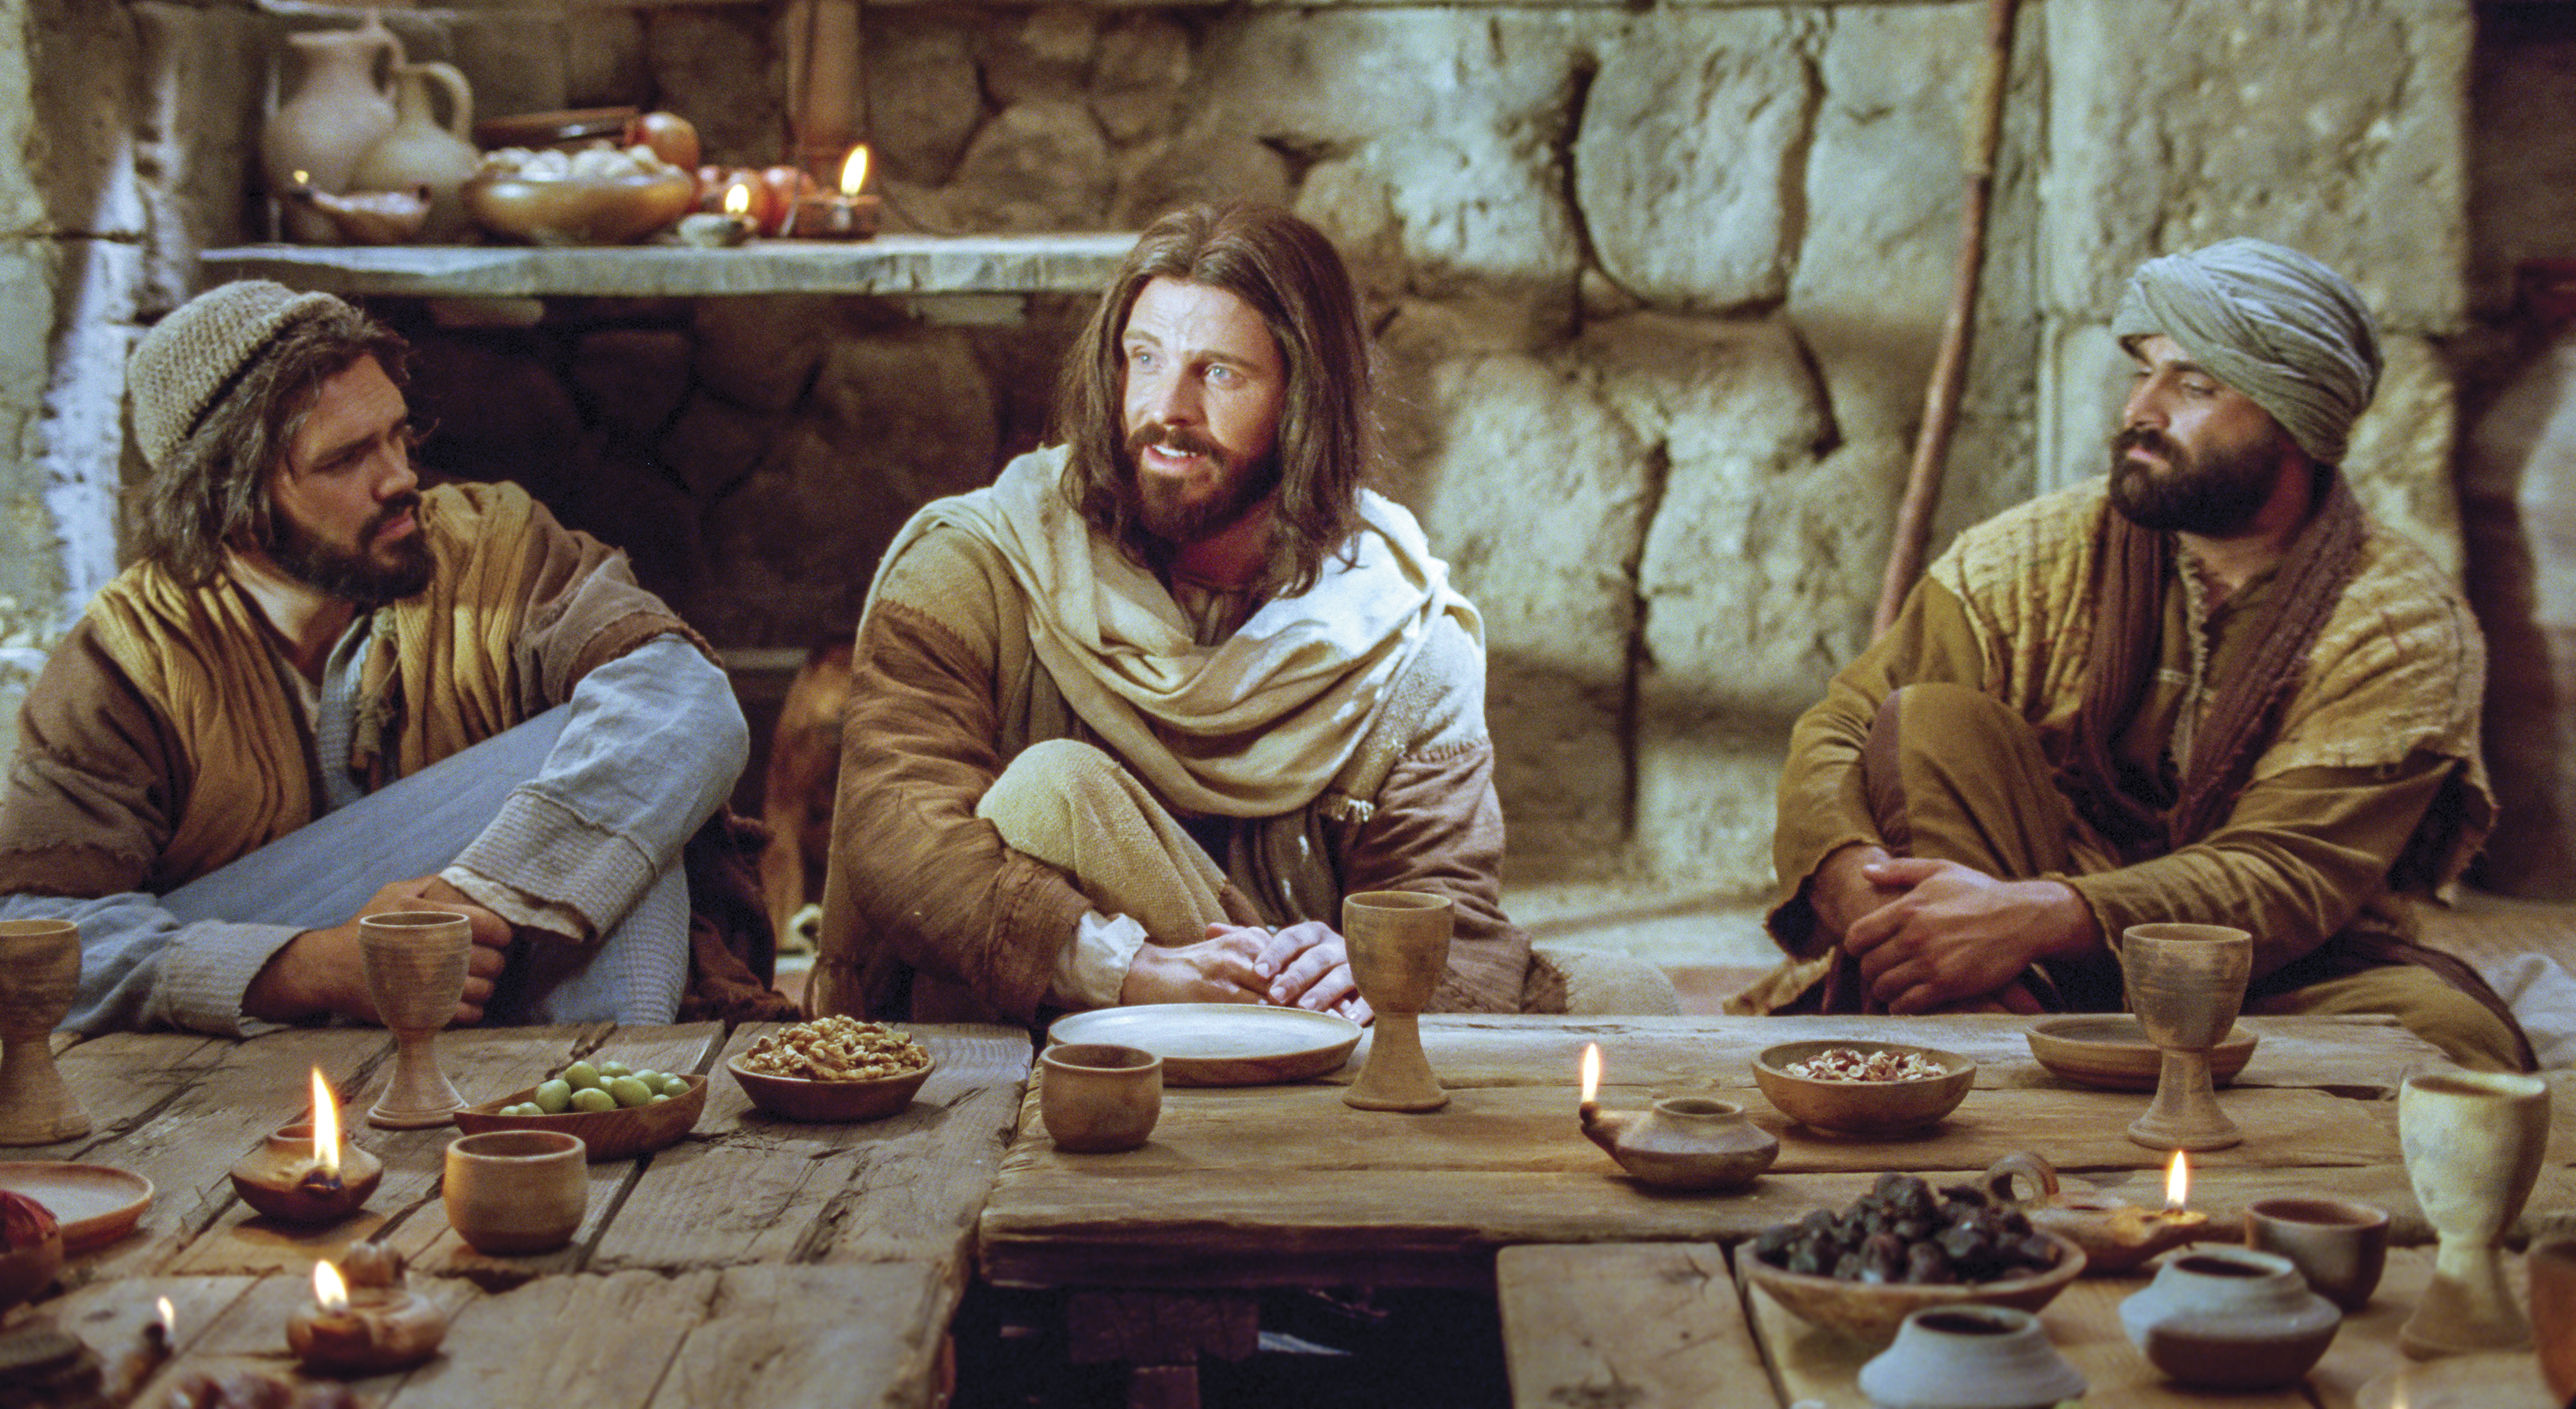 Jesus tells the story of the prodigal son, who took his inheritance and wasted it quickly in another country.